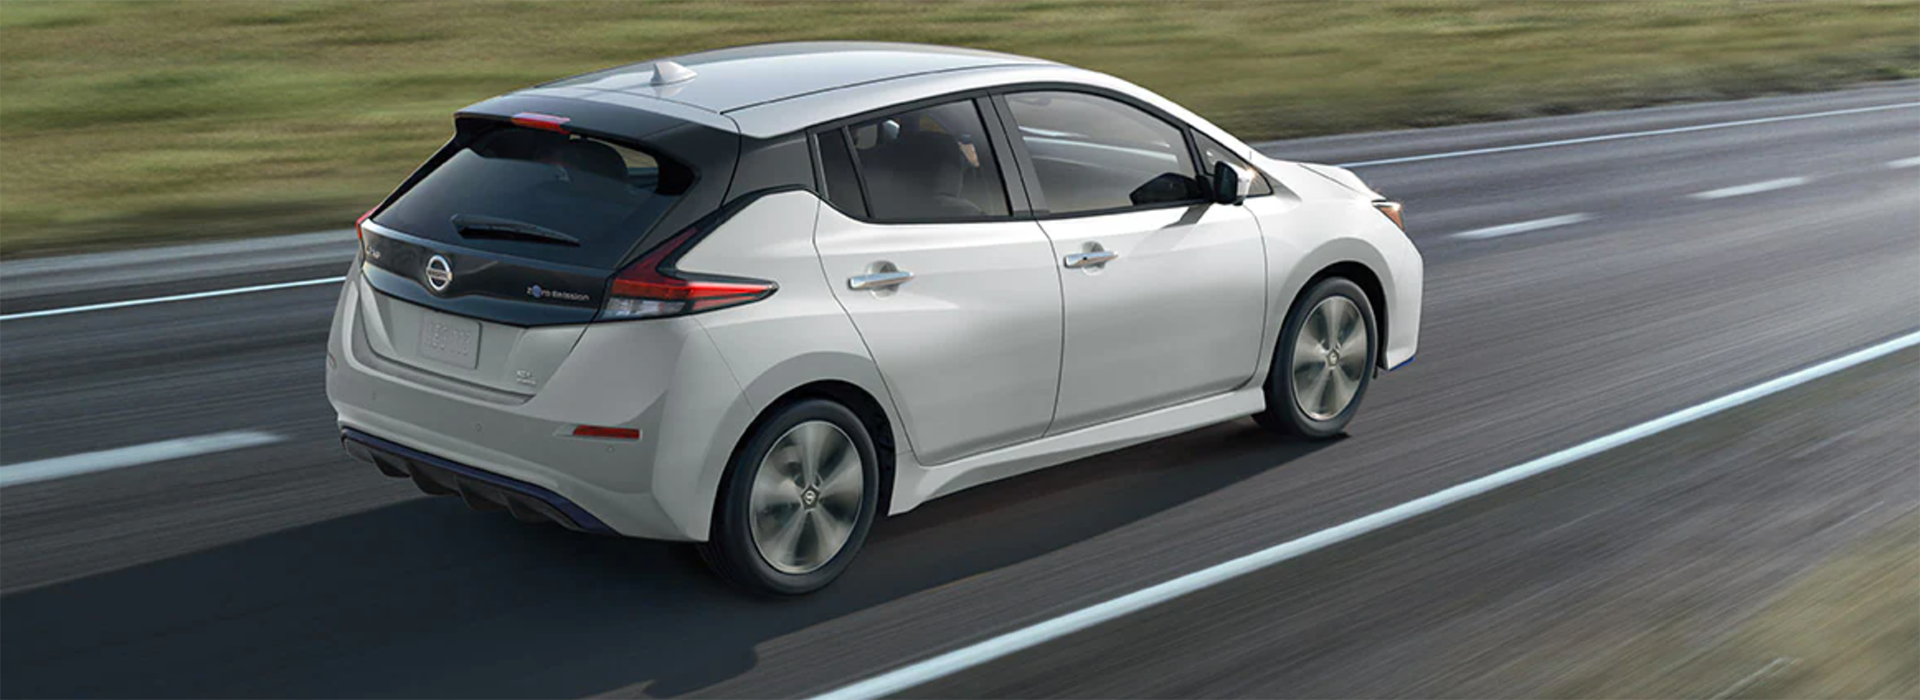 2021 Nissan Leaf Hero